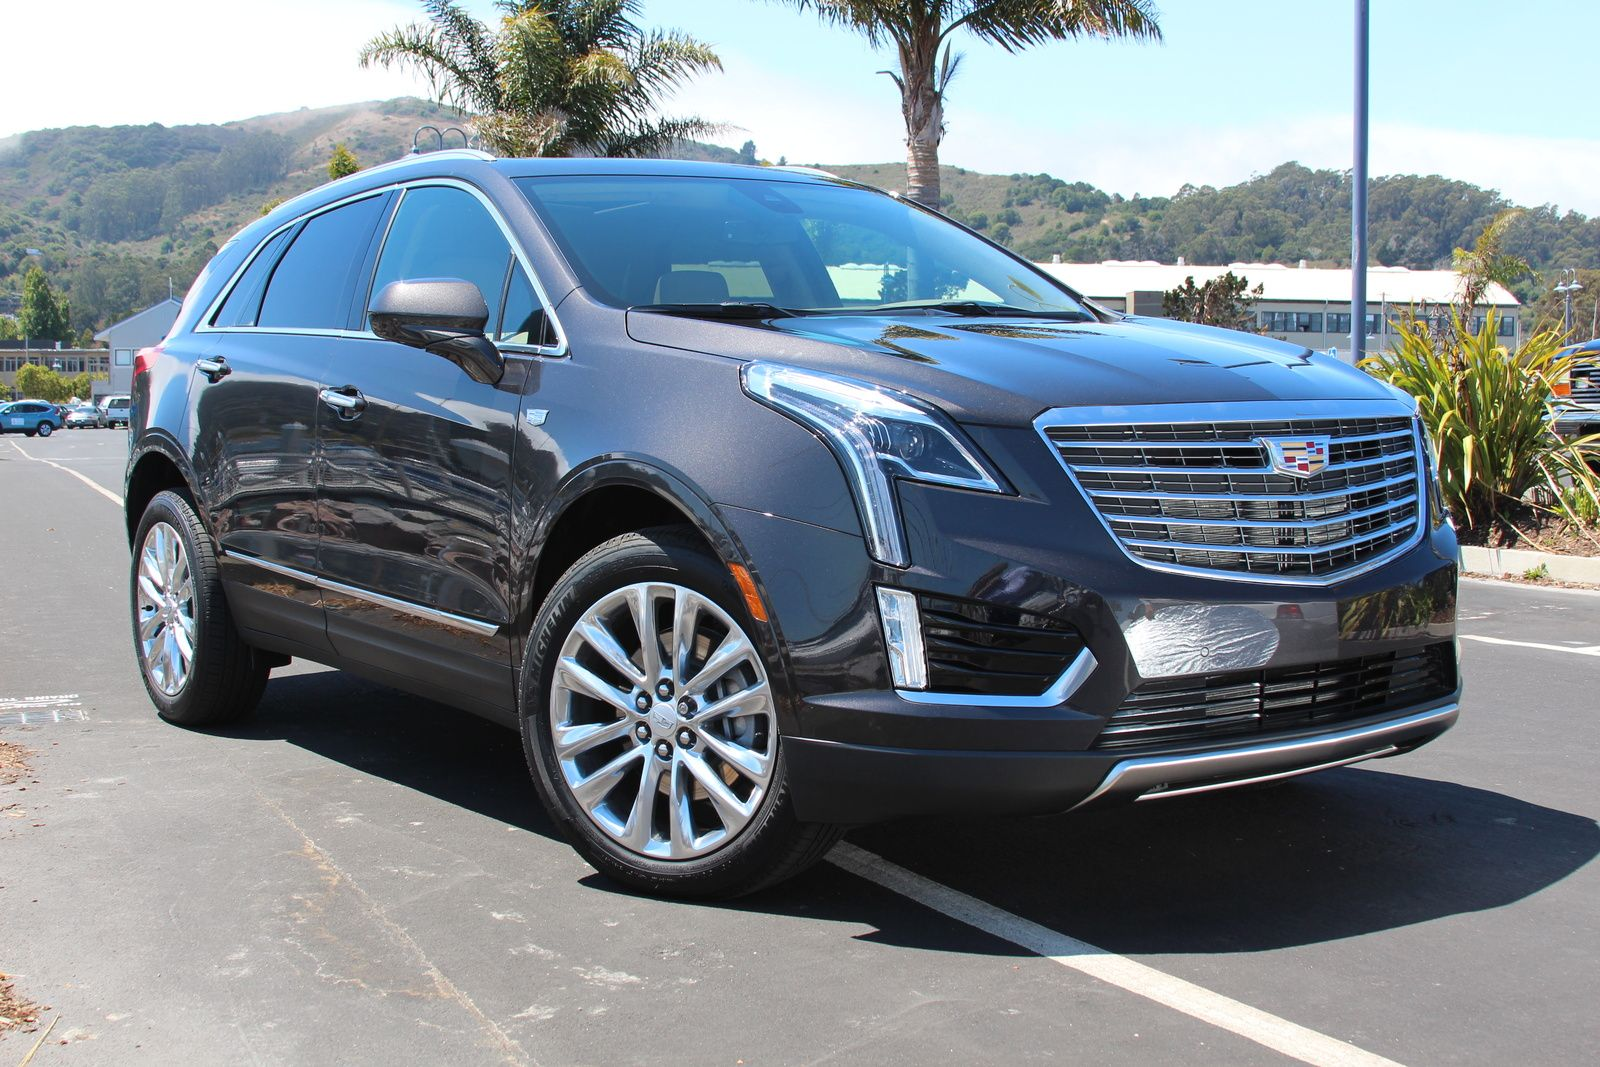 2017 Cadillac XT5 for Sale in your area - CarGurus